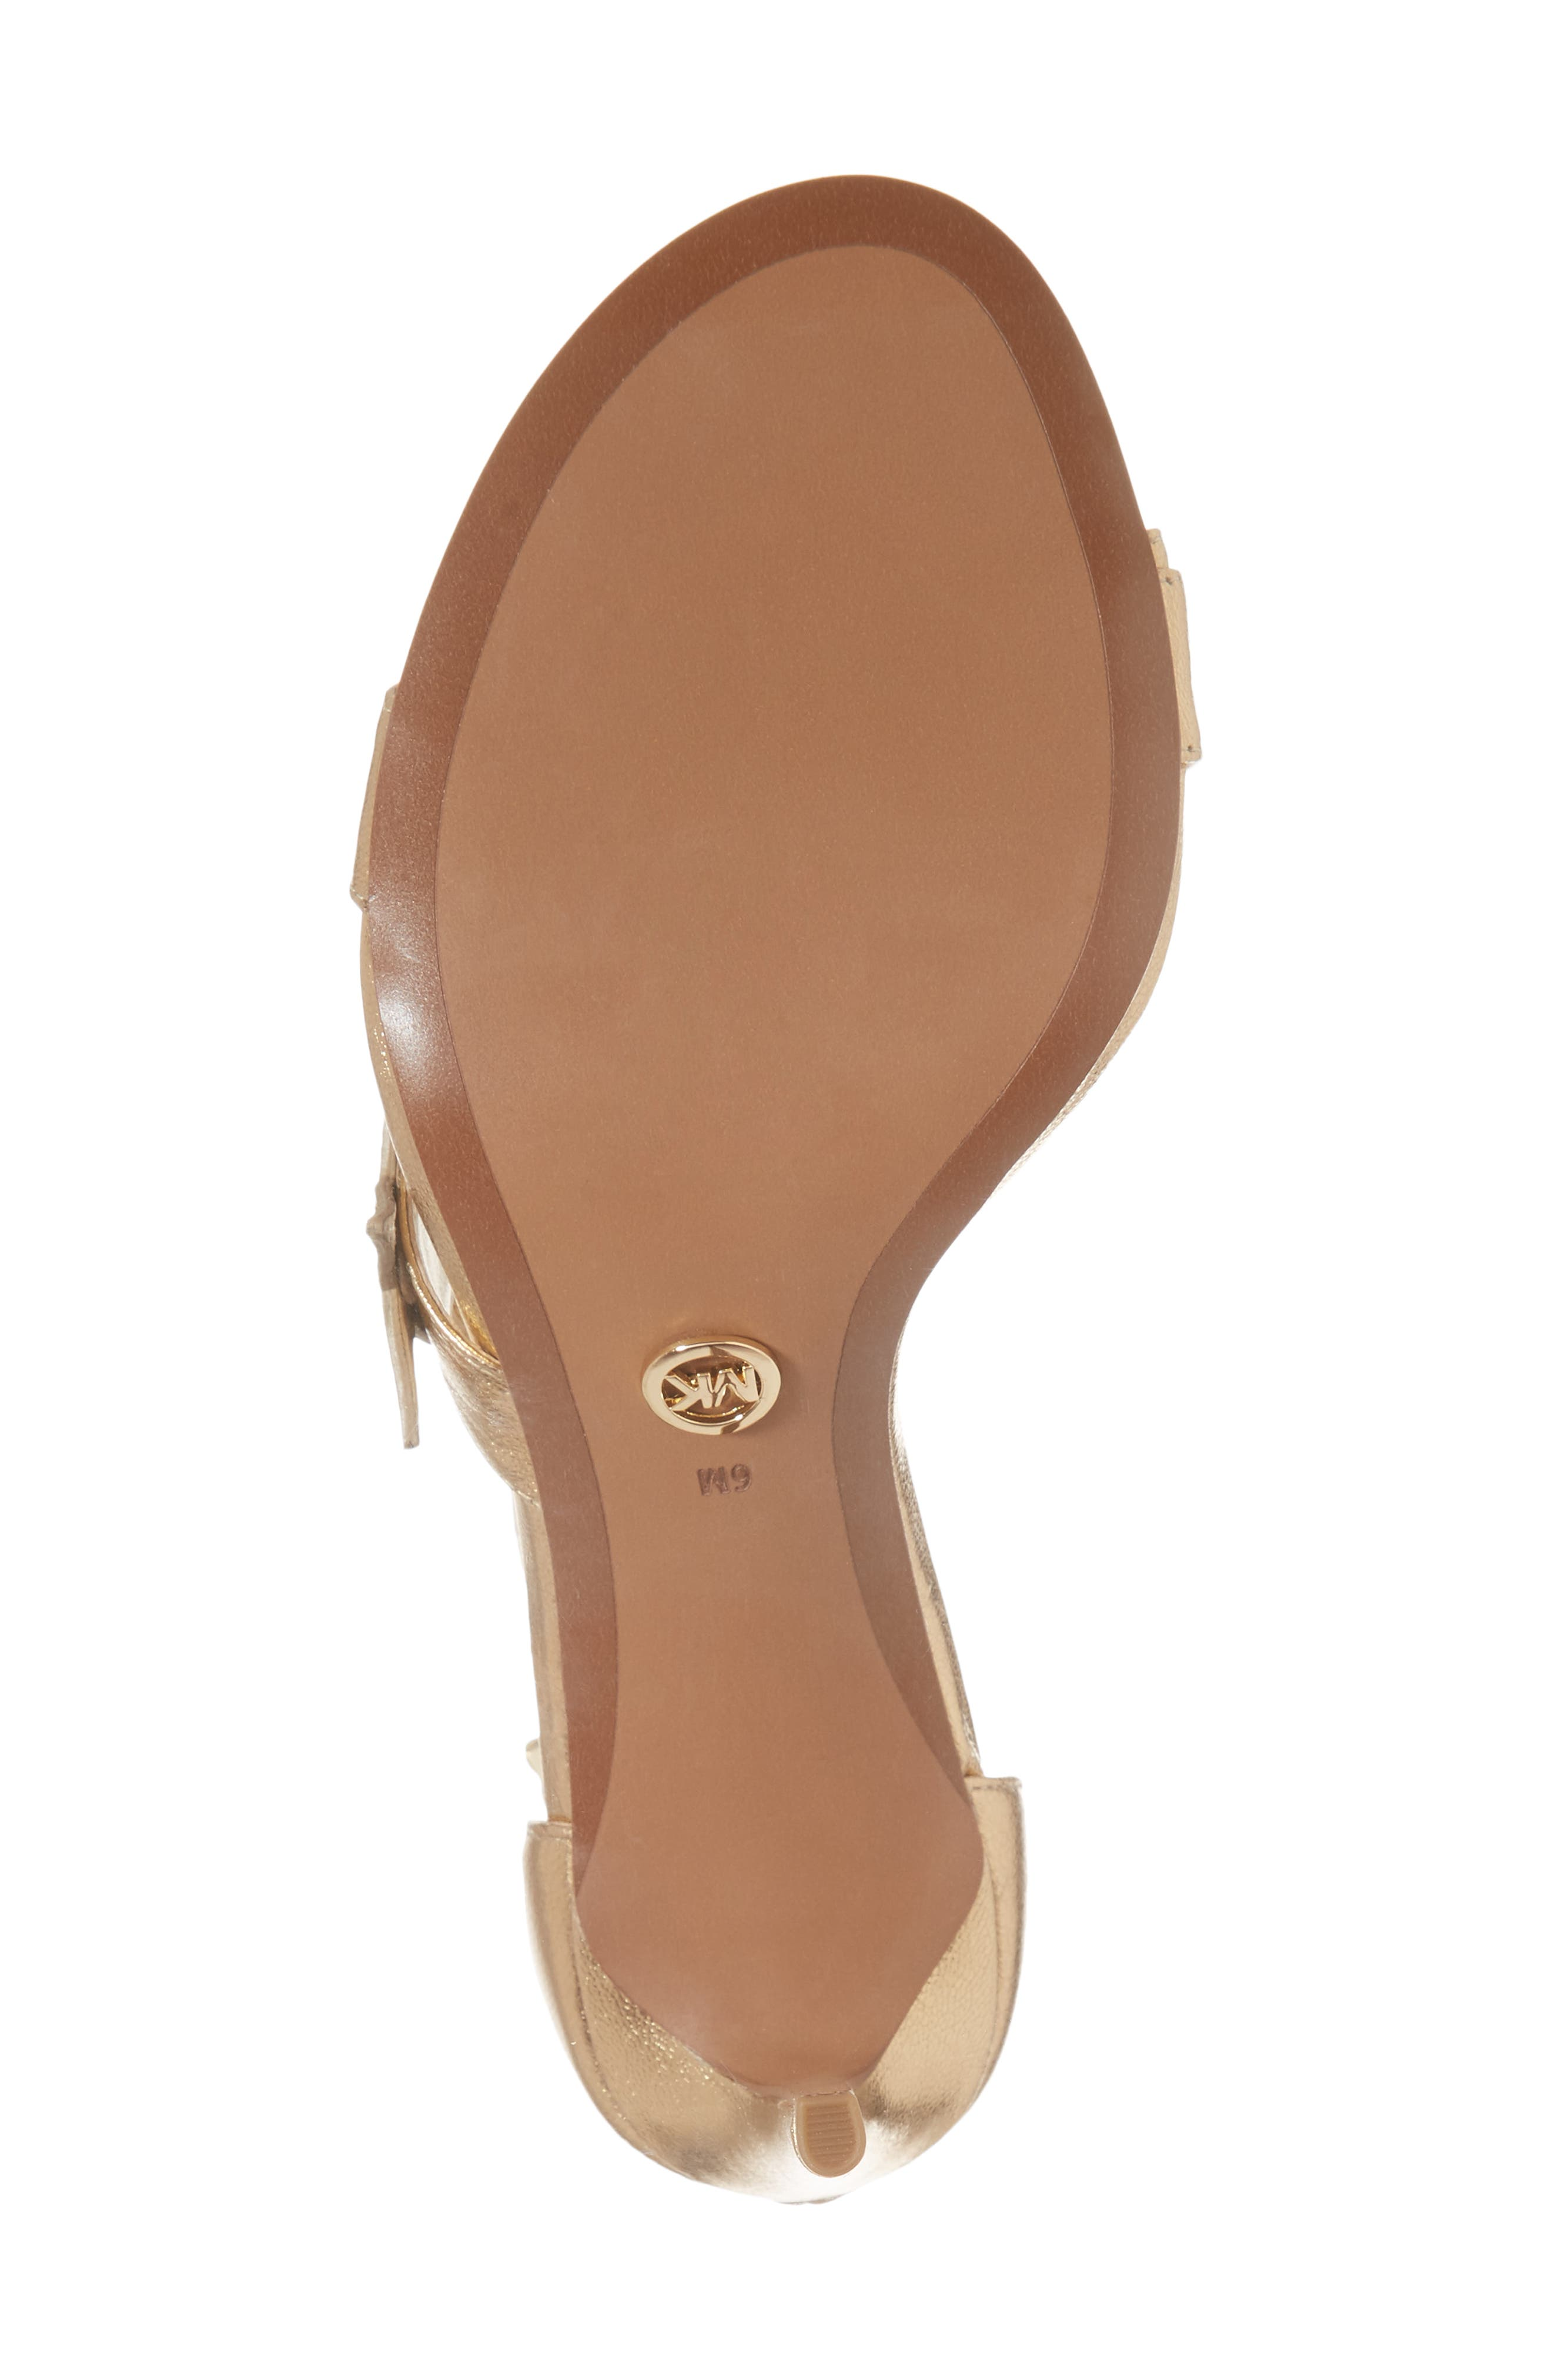 Lexie Sandal,                             Alternate thumbnail 6, color,                             Pale Gold Nappa Leather